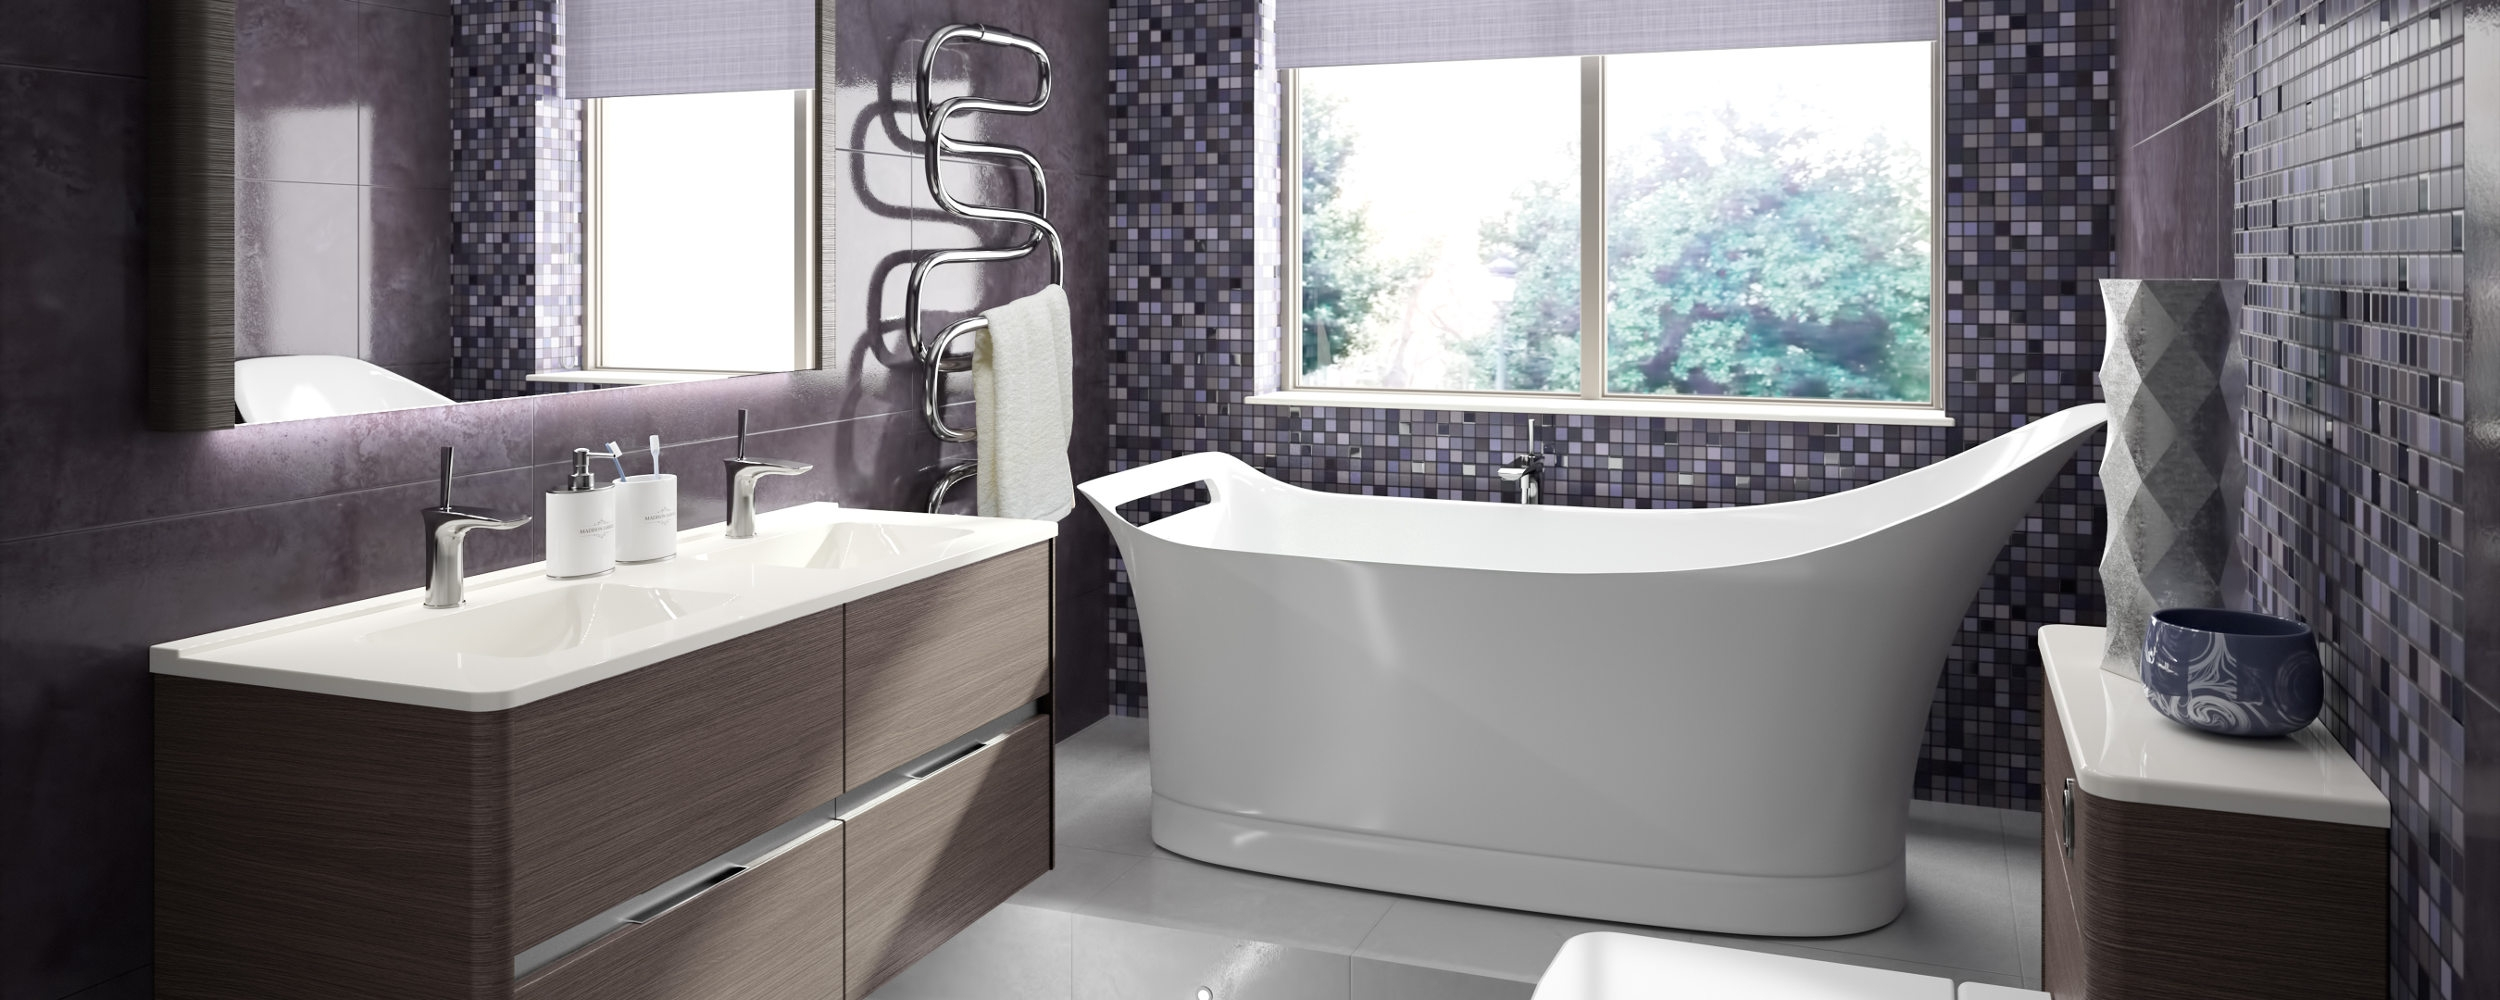 modern bathroom design edinburgh